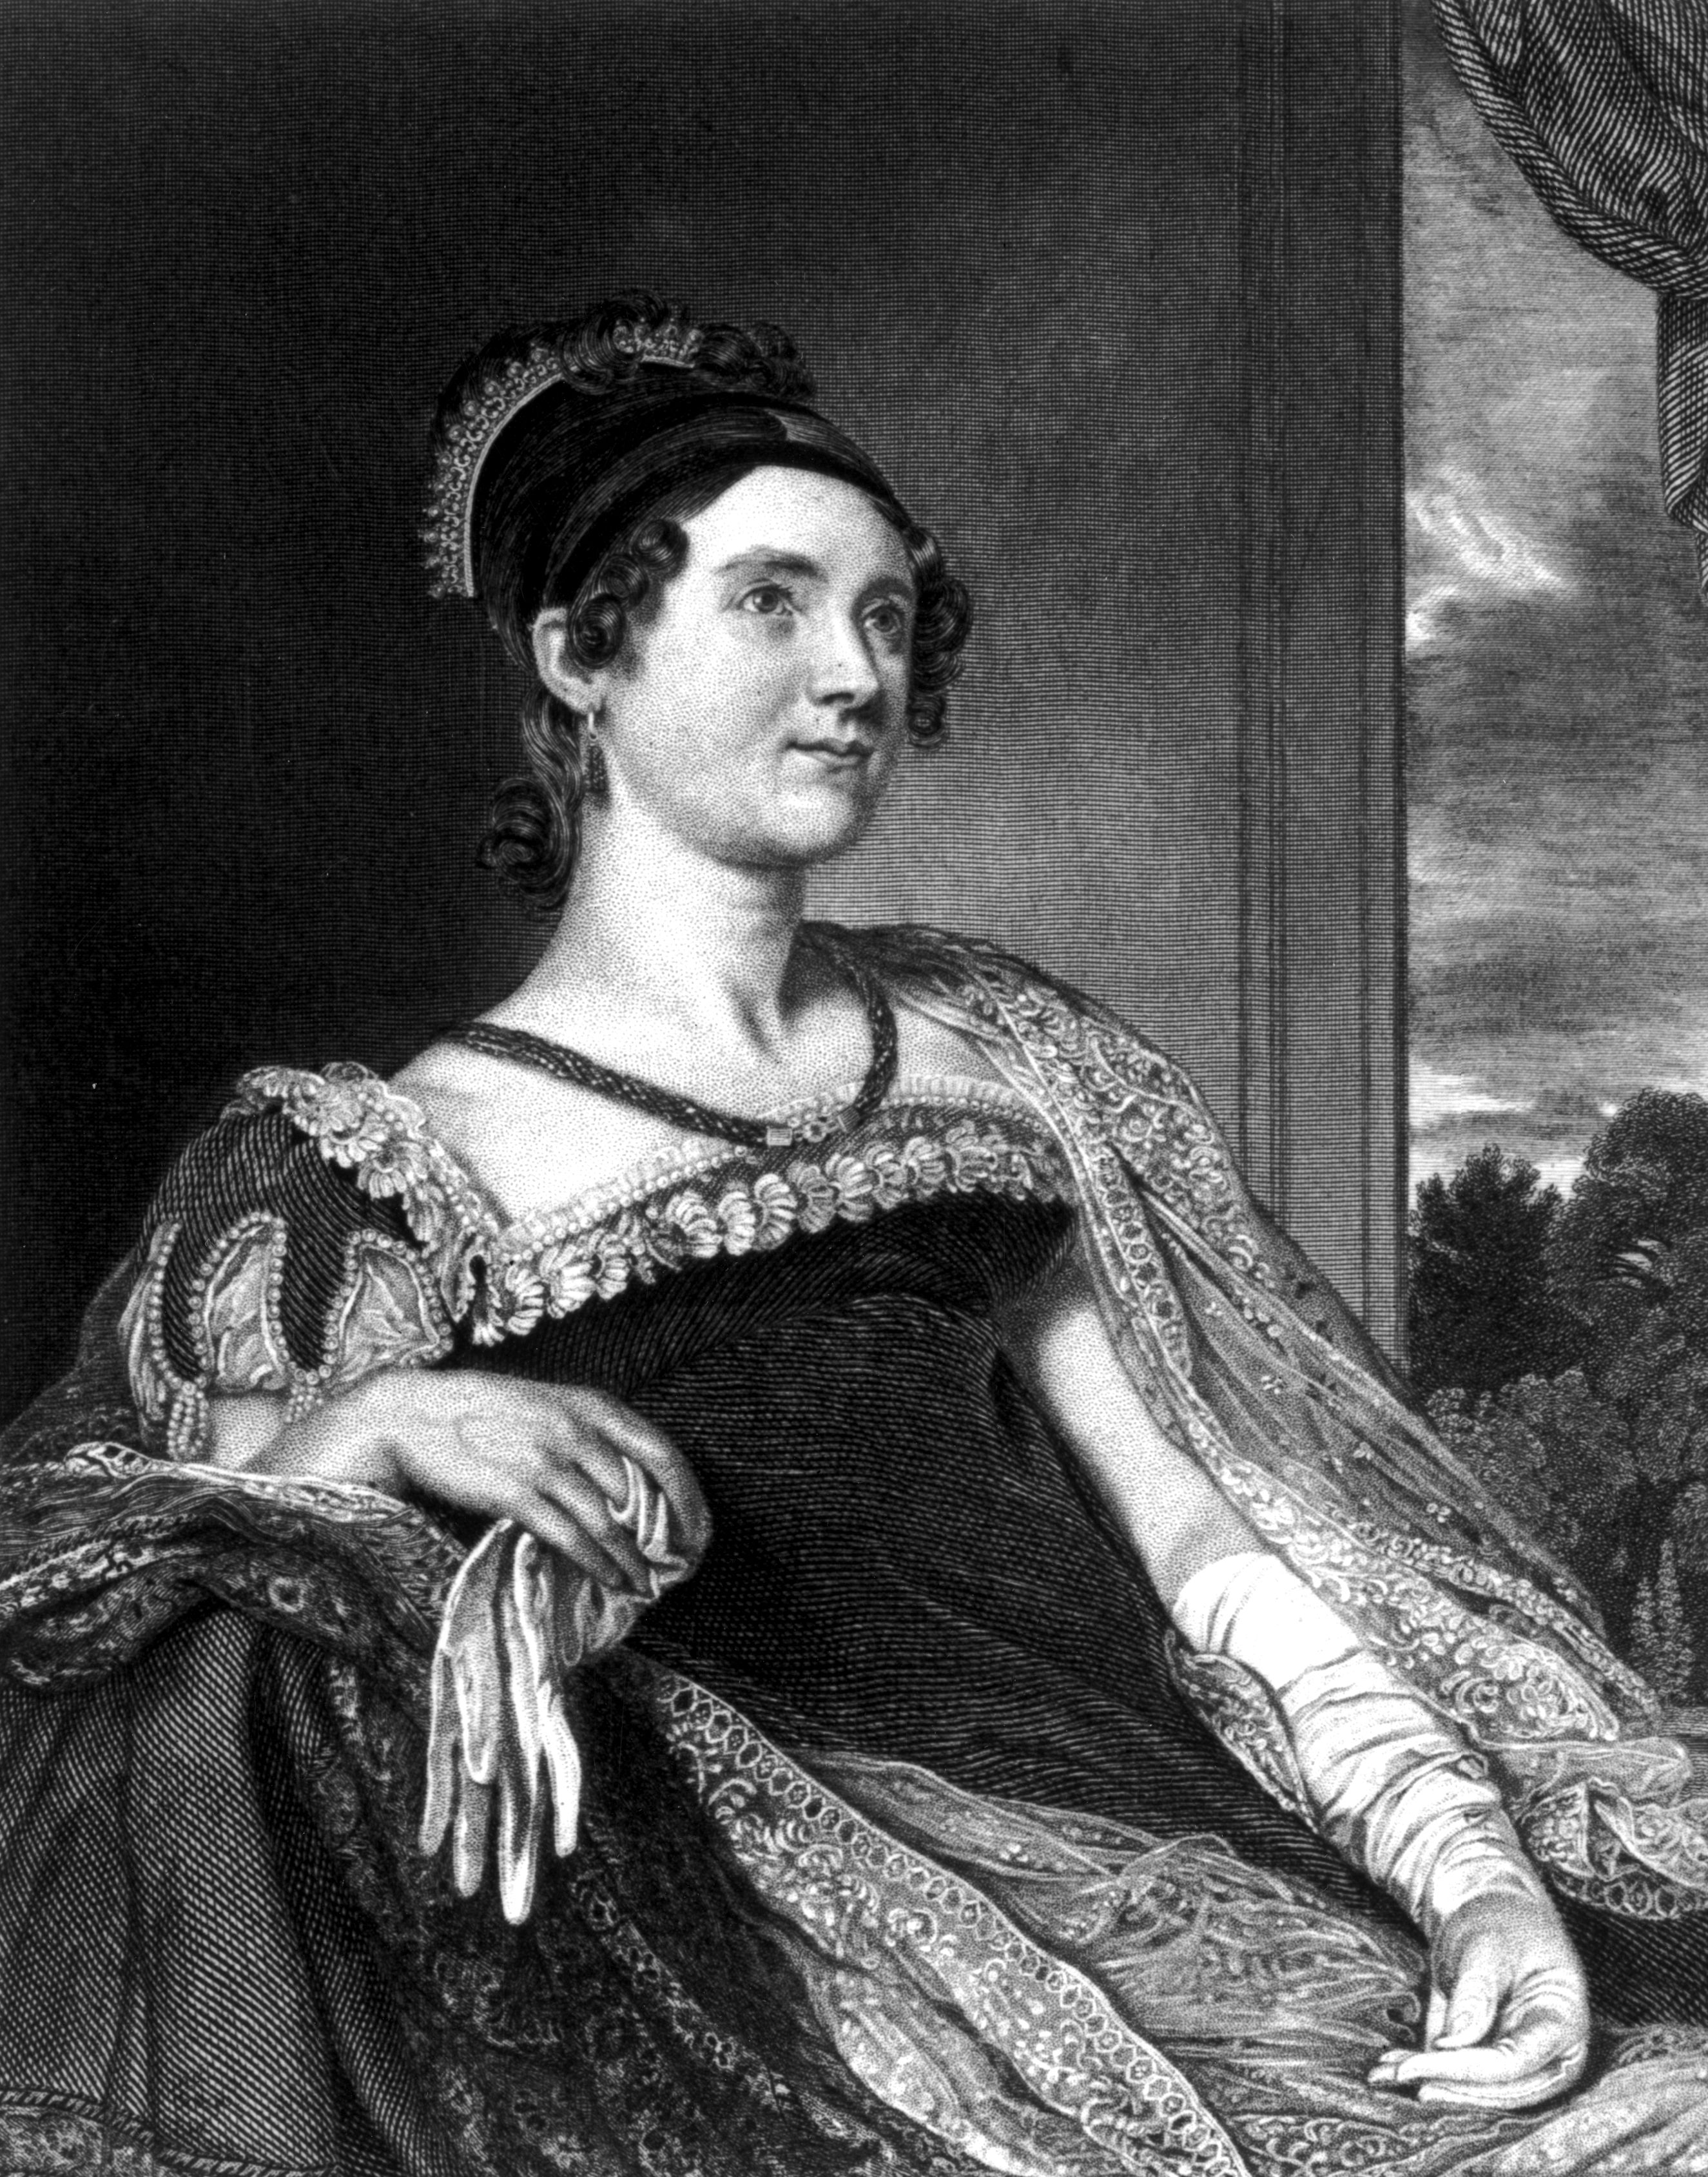 Louisa Catherine Adams (1775 - 1852), the wife of the sixth President of the United States of America, John Quincy Adams. Painting by GR Leslie and engraved by GE Storm, circa 1800.